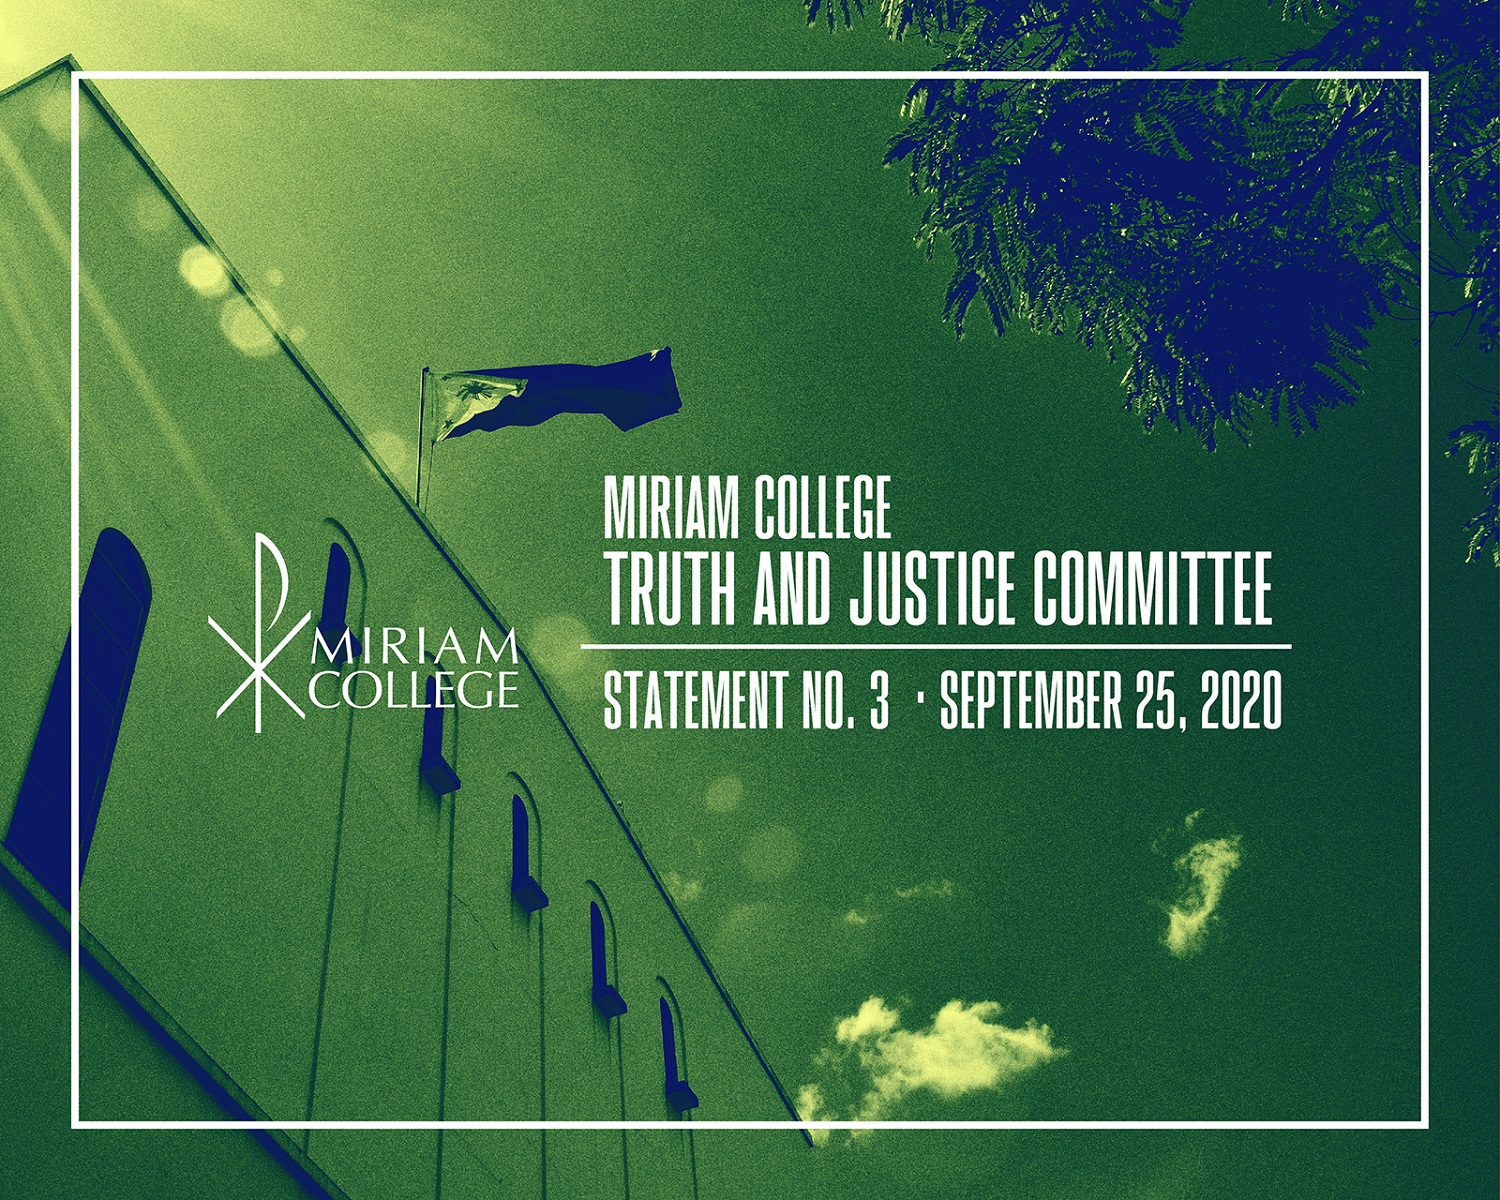 MIRIAM COLLEGE TRUTH AND JUSTICE COMMITTEE / AD HOC COMMITTEE ON DECORUM AND INVESTIGATION Statement No. 3